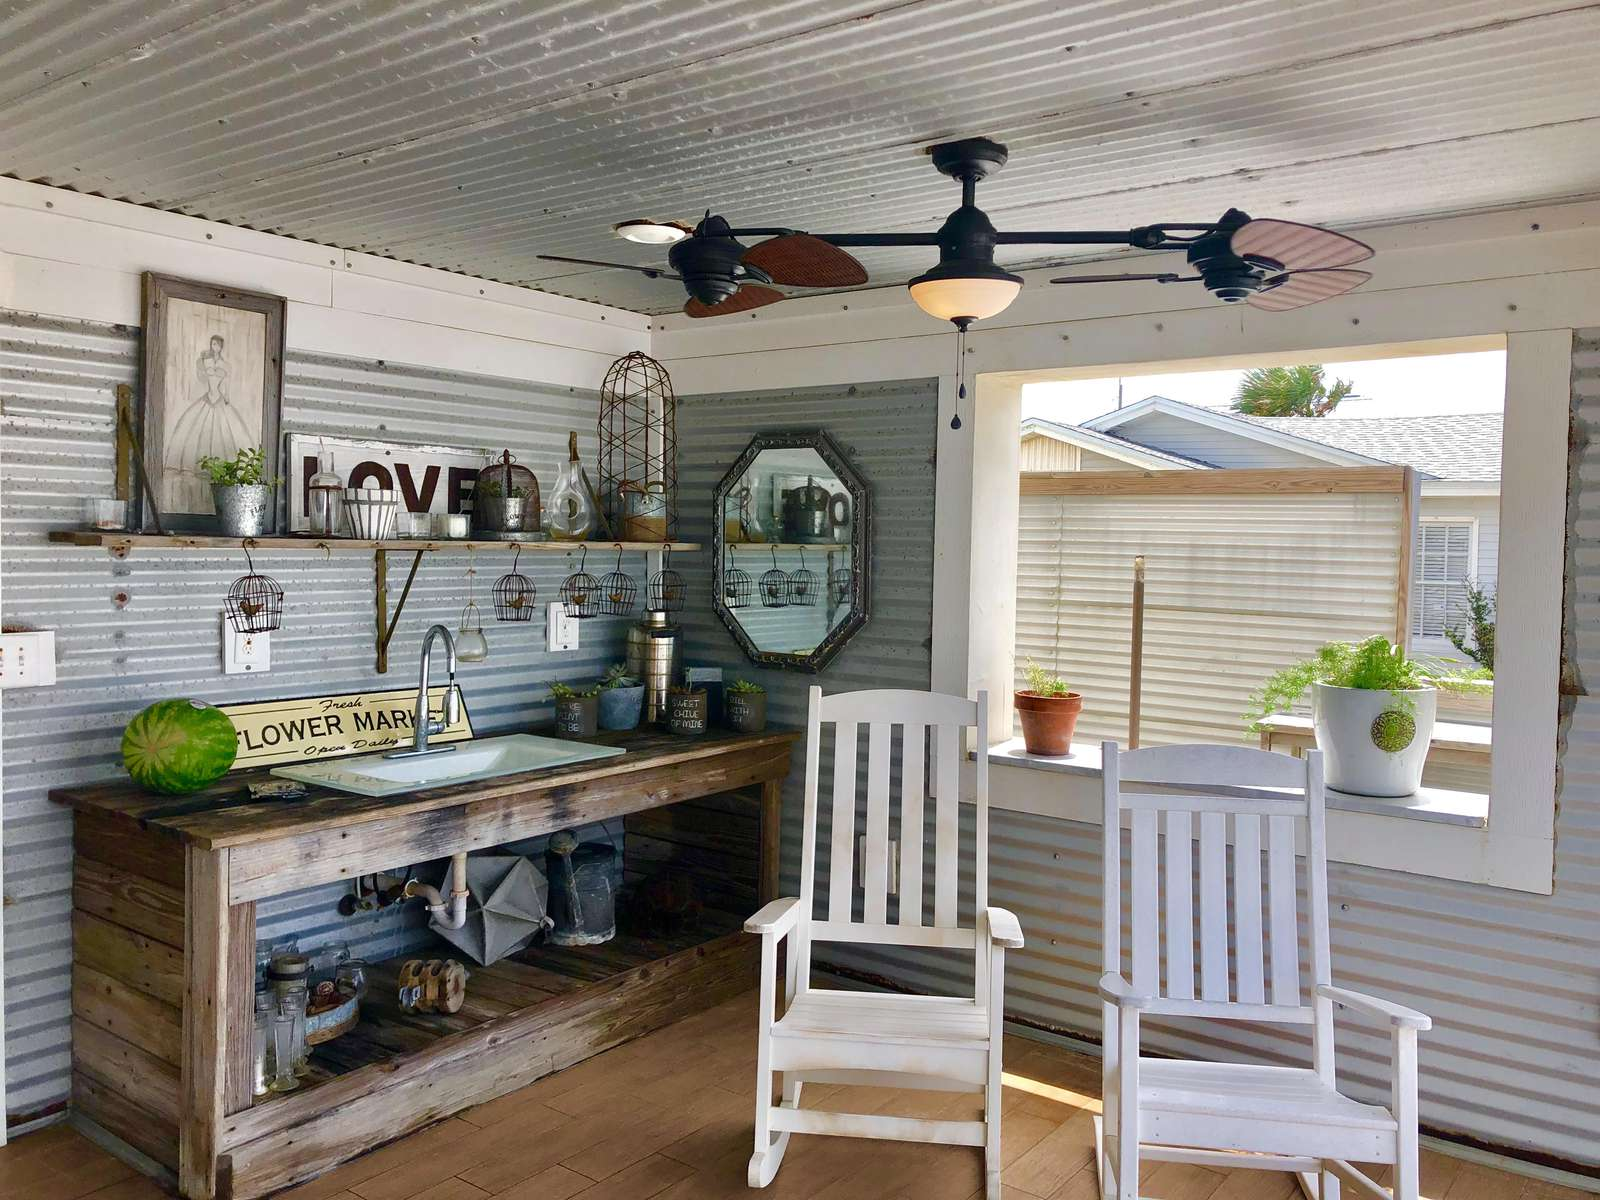 Logia on back deck with 4 rocking chairs, 2 ceilings fans, and sink